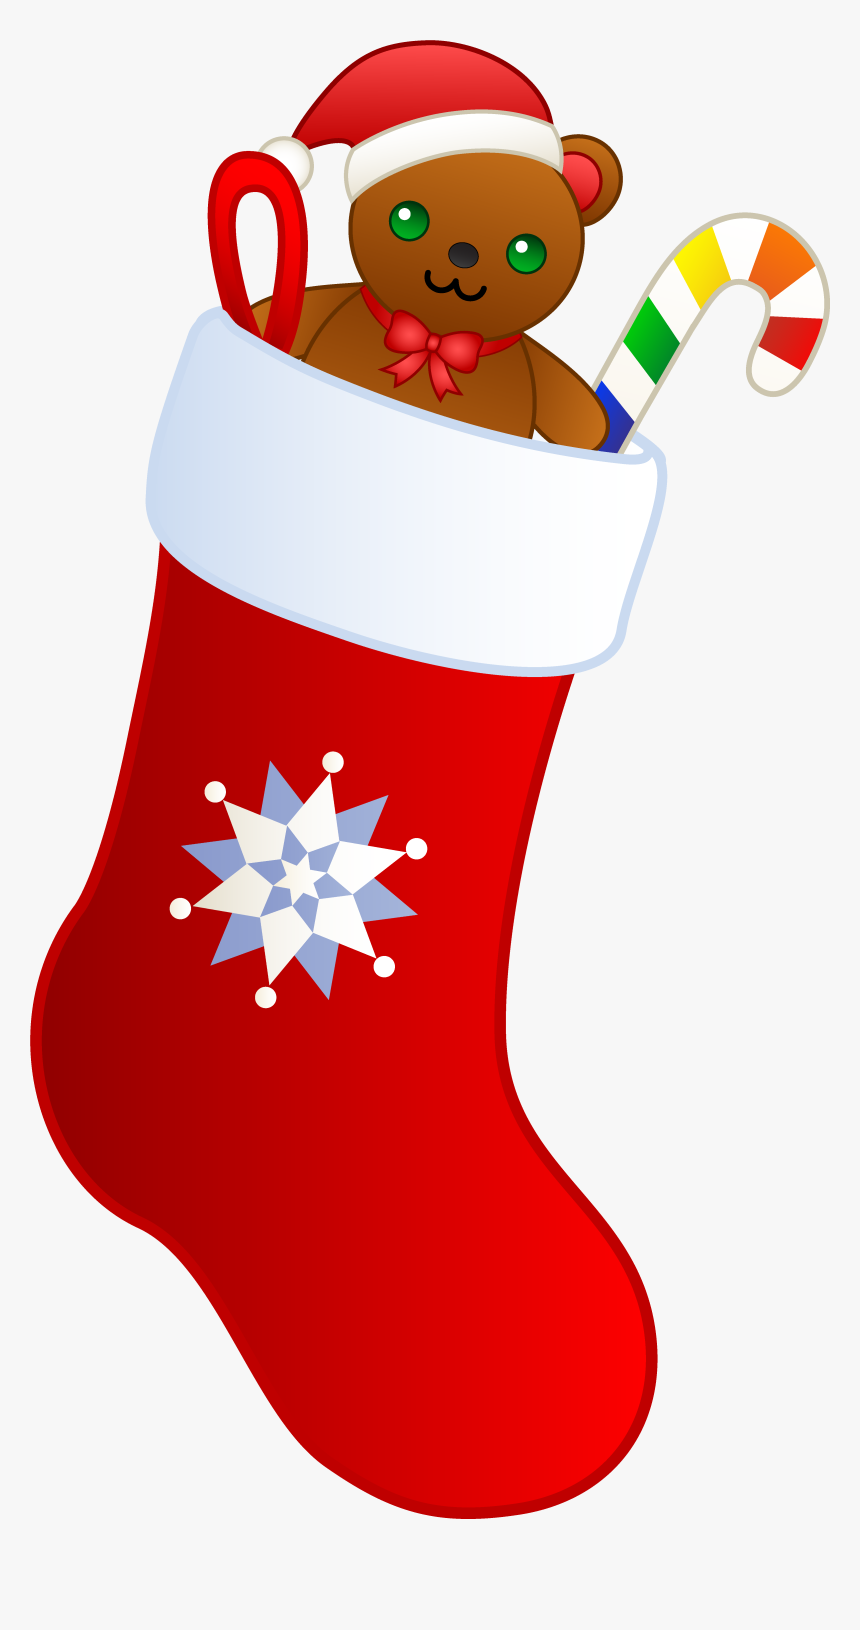 Christmas Stocking With Teddy - Transparent Clipart Christmas Stocking, HD Png Download, Free Download